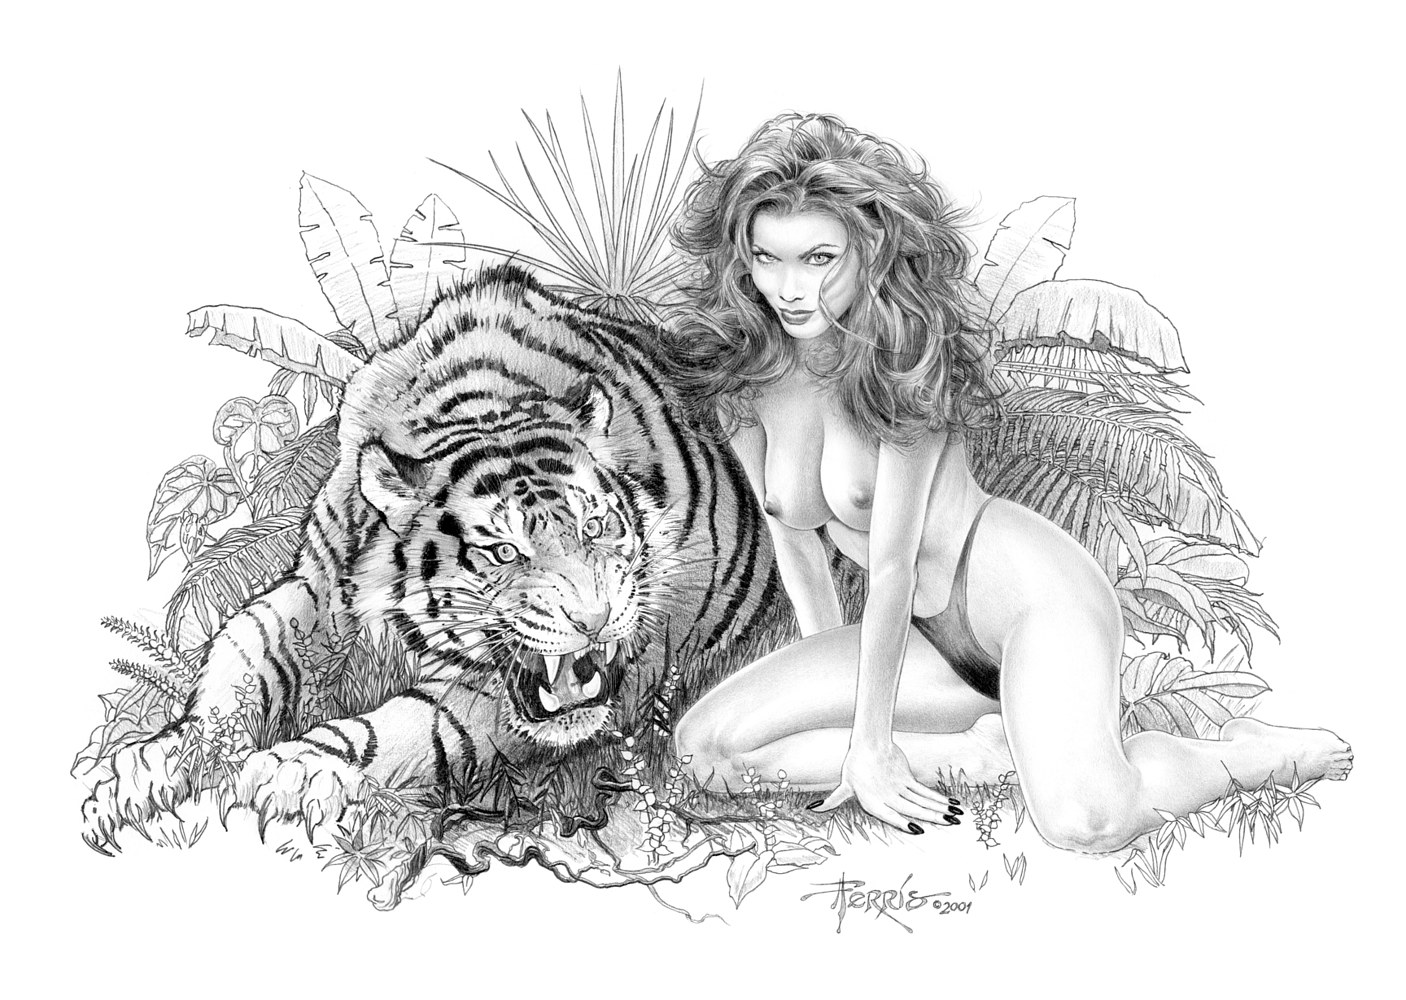 Tigress by Steve Ferris